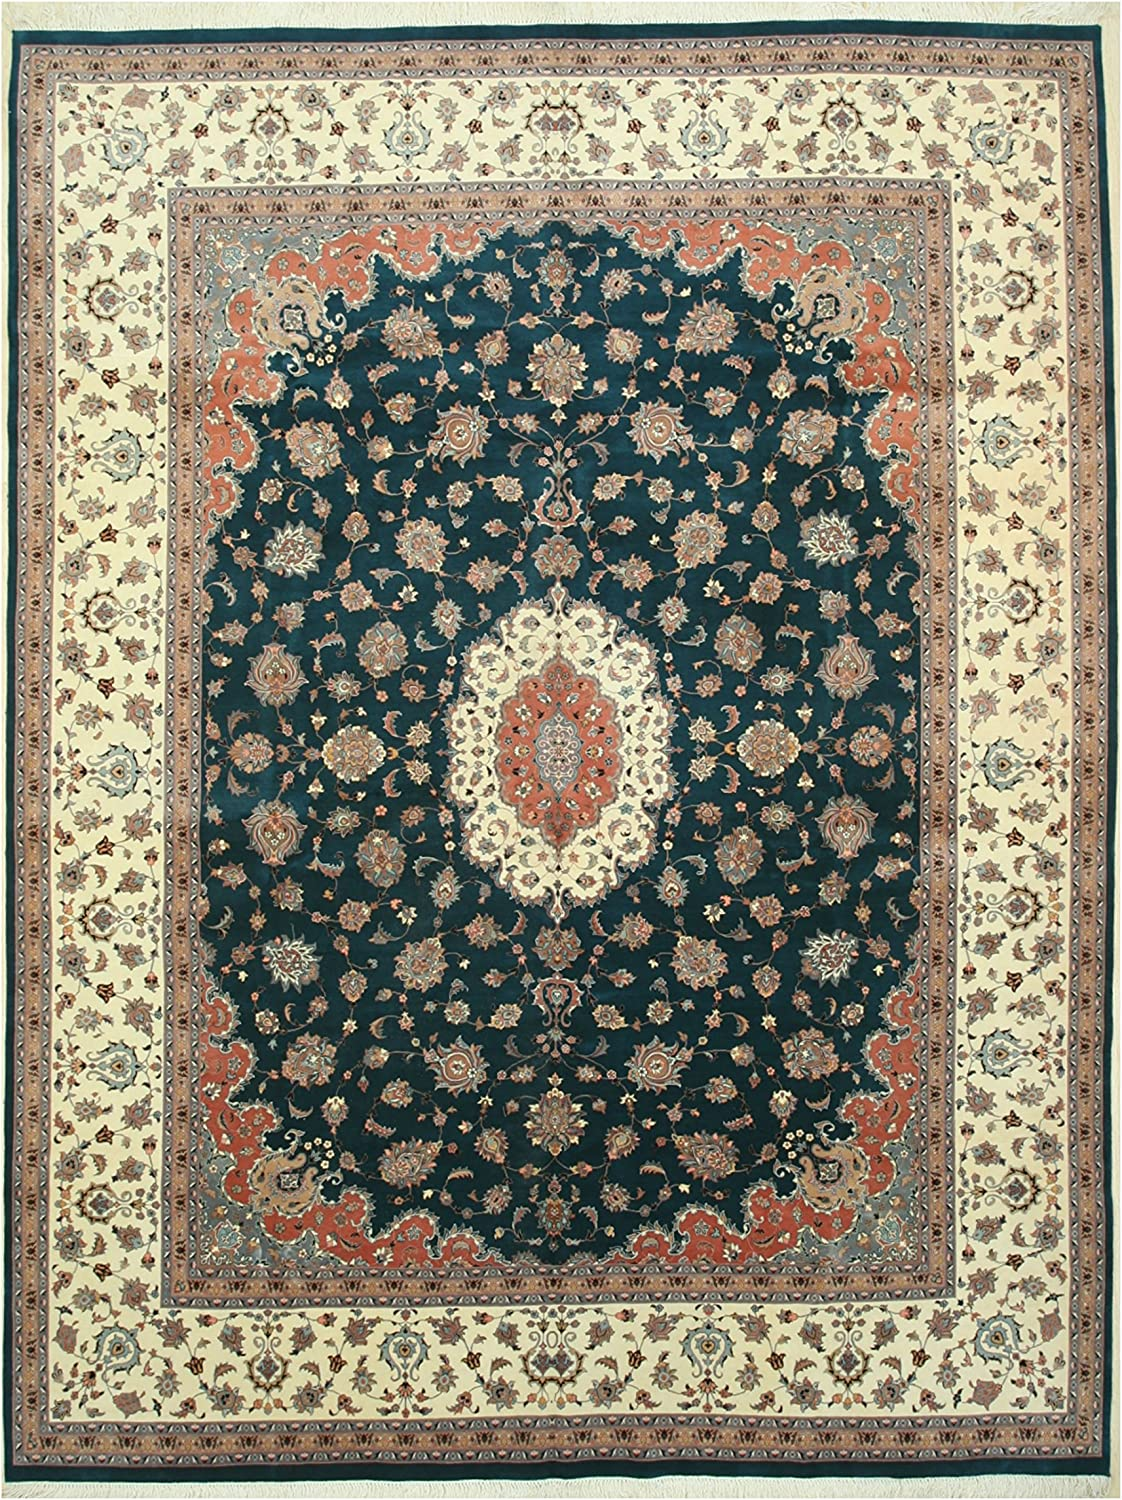 EORC BA8900 Hand-Knotted Wool Pak-Persian Bargain sale 14'10 Fort Worth Mall Rug Gre x 11'2